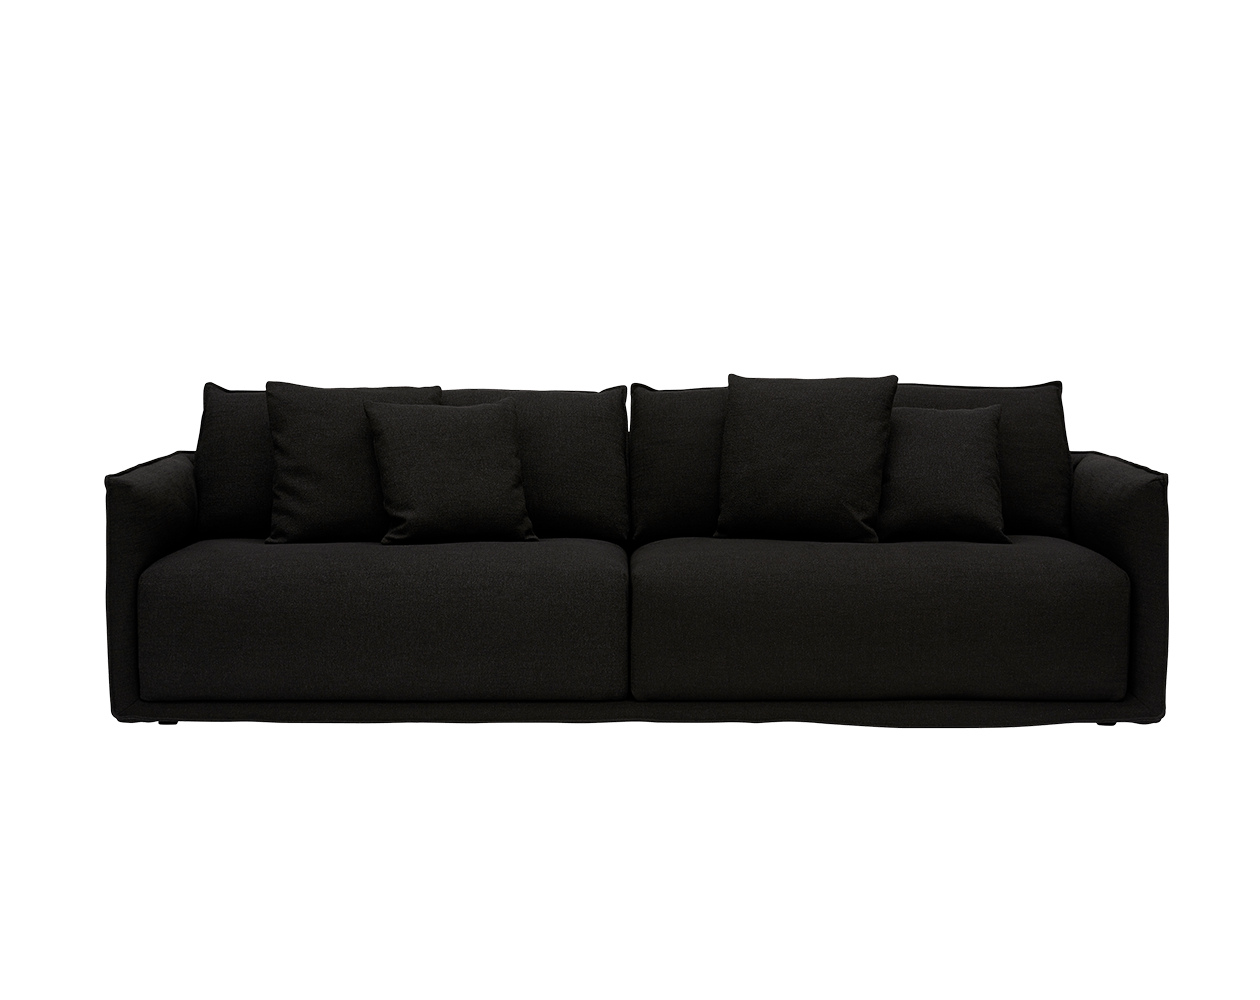 Sofa Express Locations Max Sofa Sp01 Design